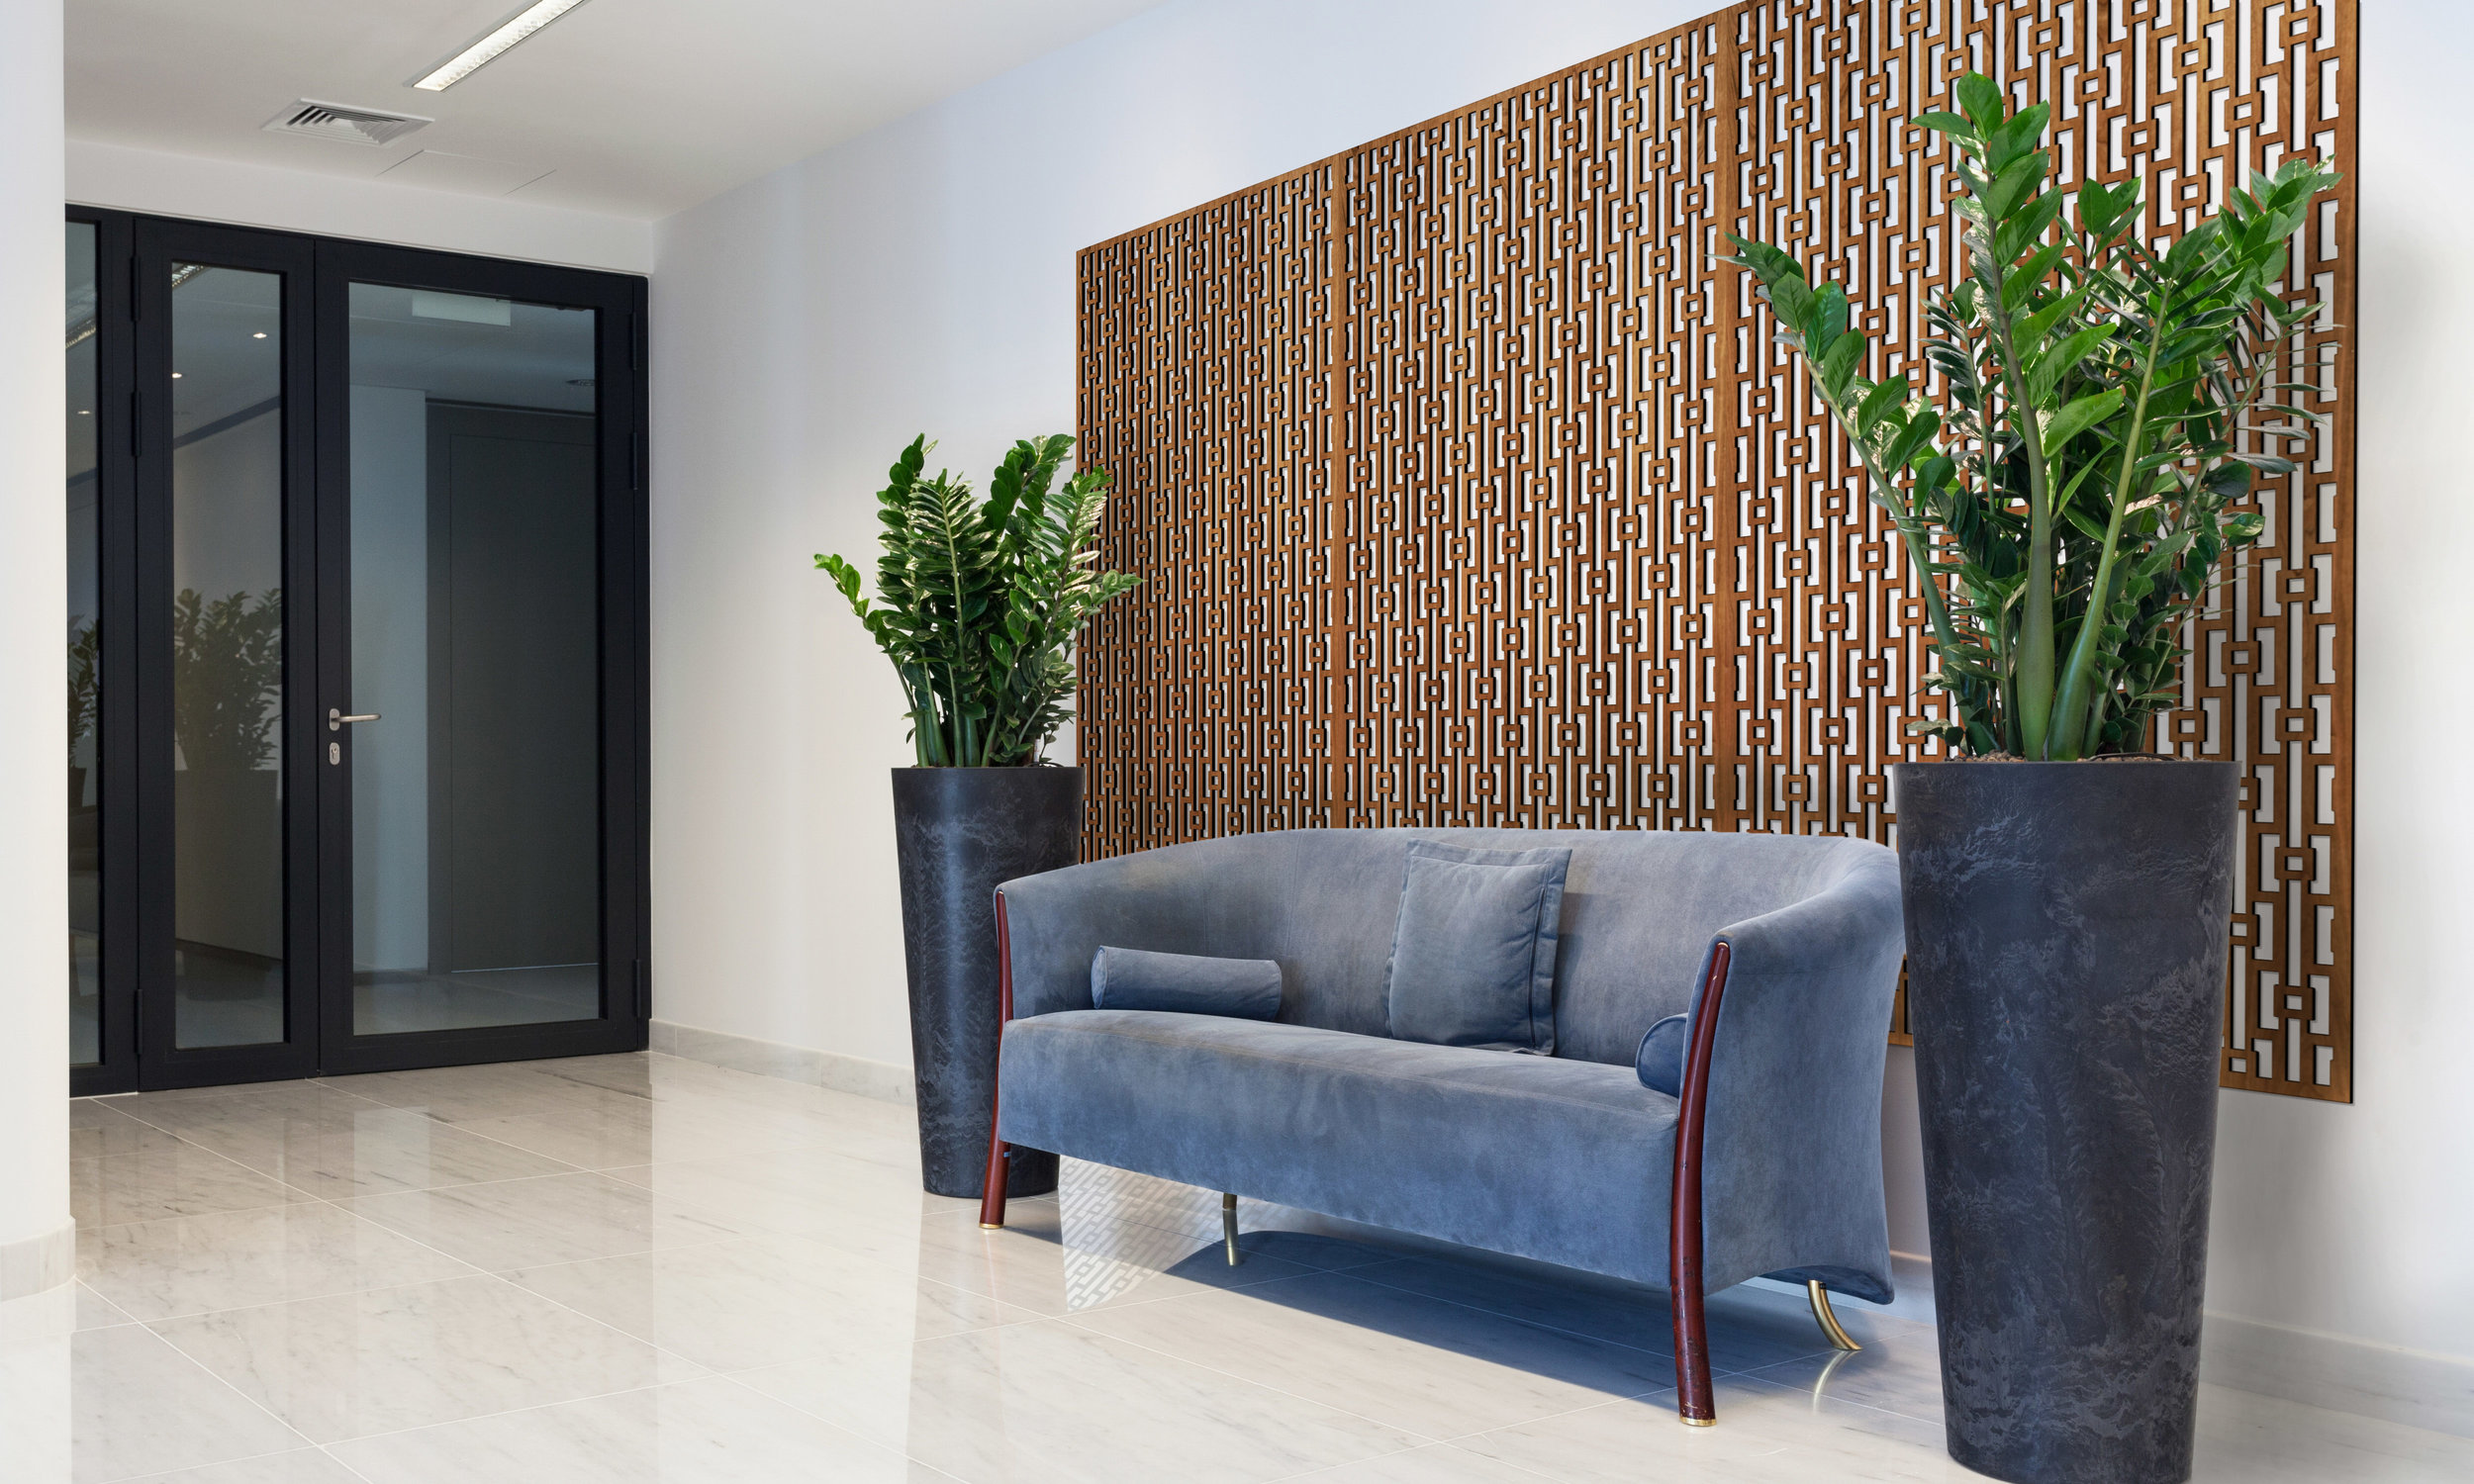 Installation Rendering A   Mod Geometric decorative office wall panel - shown in Cherry